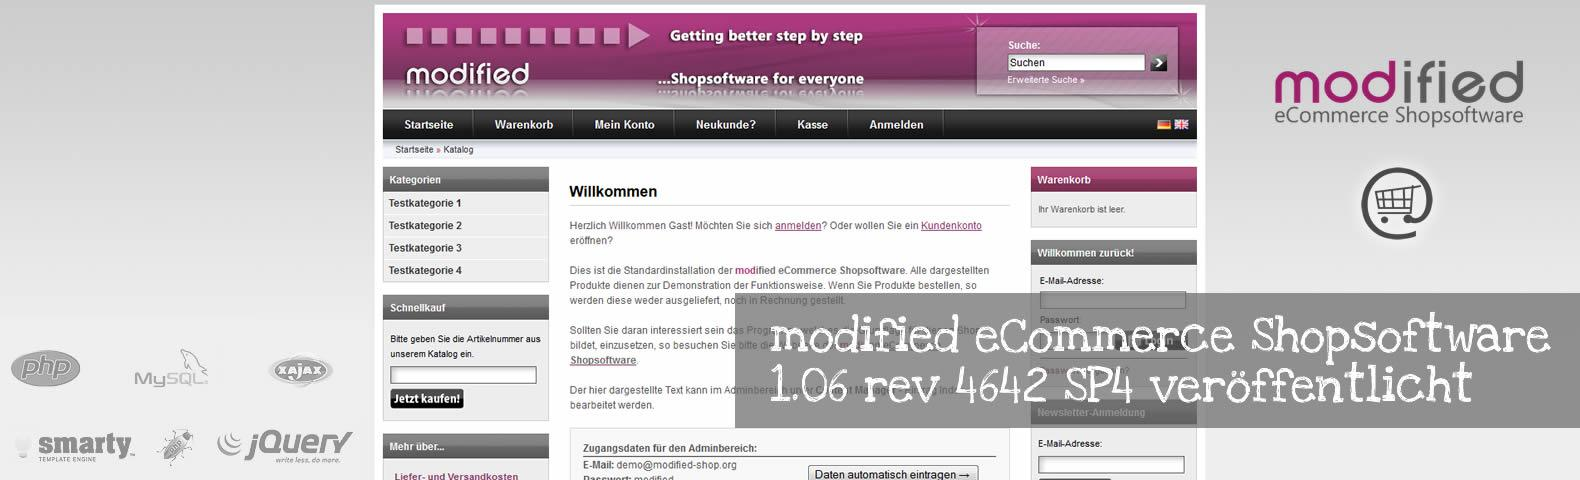 modified eCommerce Shopsoftware 1.06 rev 4642 SP4 veröffentlicht